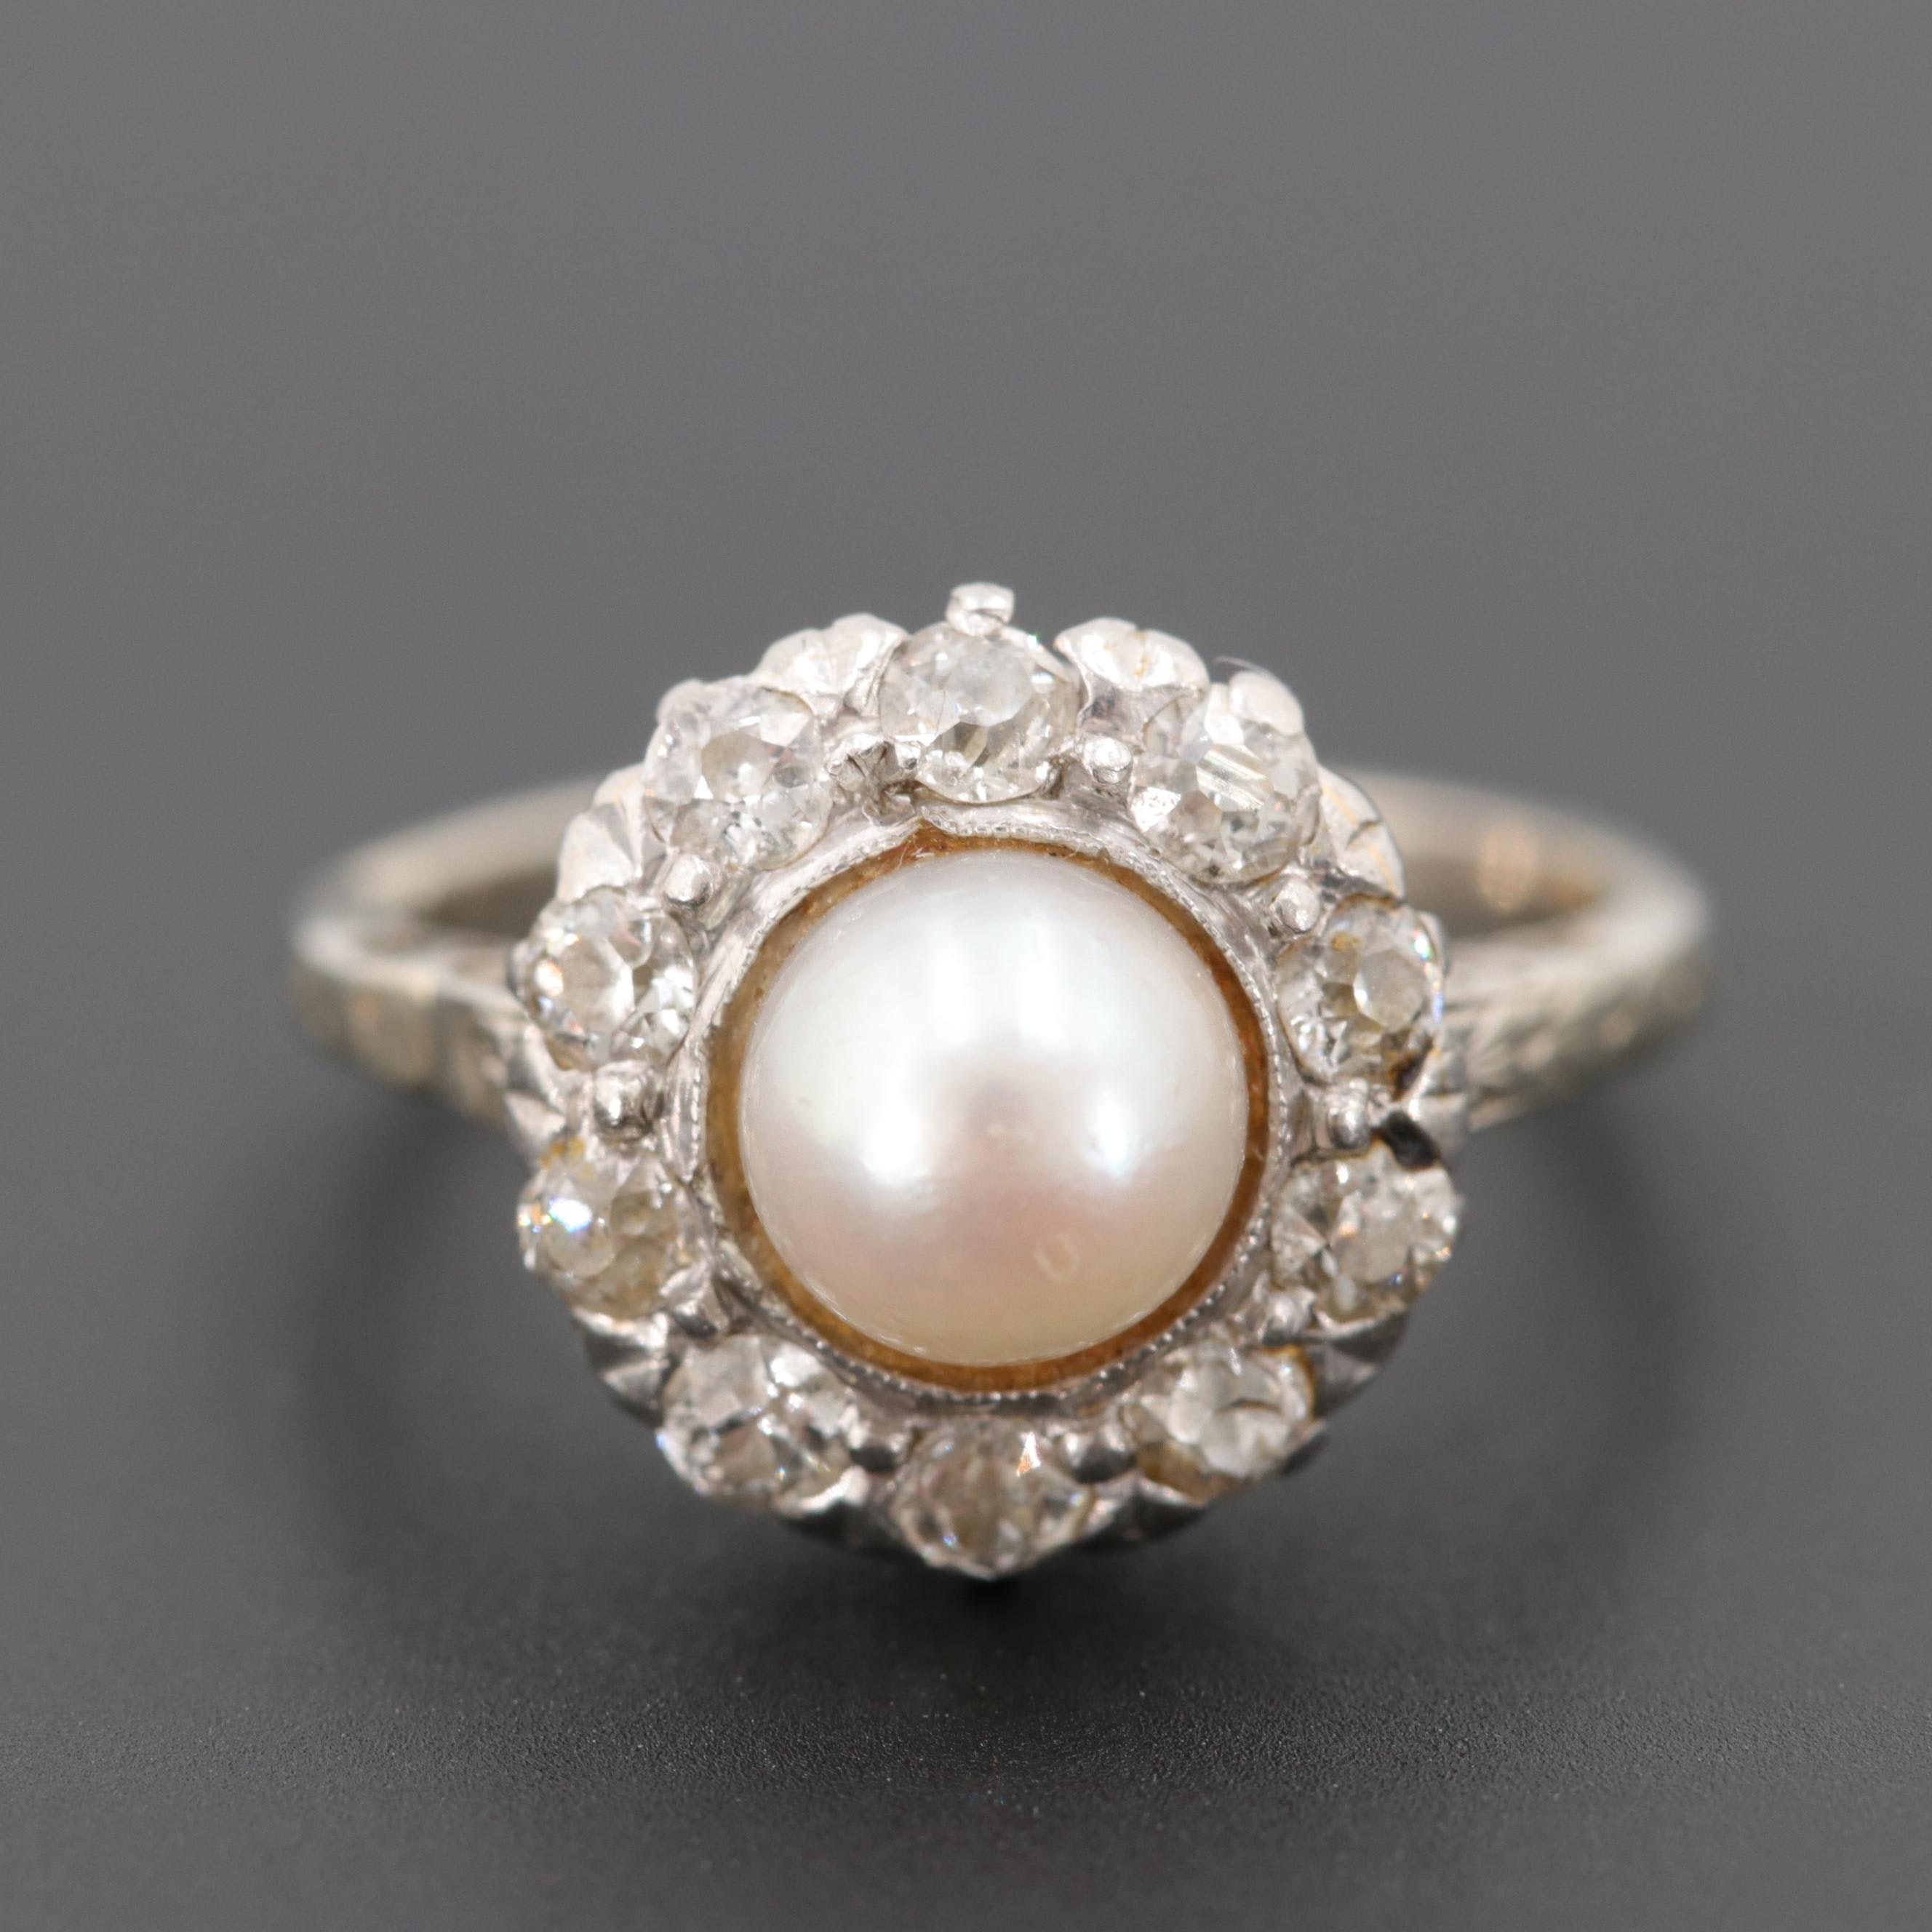 Vintage 14K White Gold Cultured Pearl and Diamond Ring with Platinum Top Rim